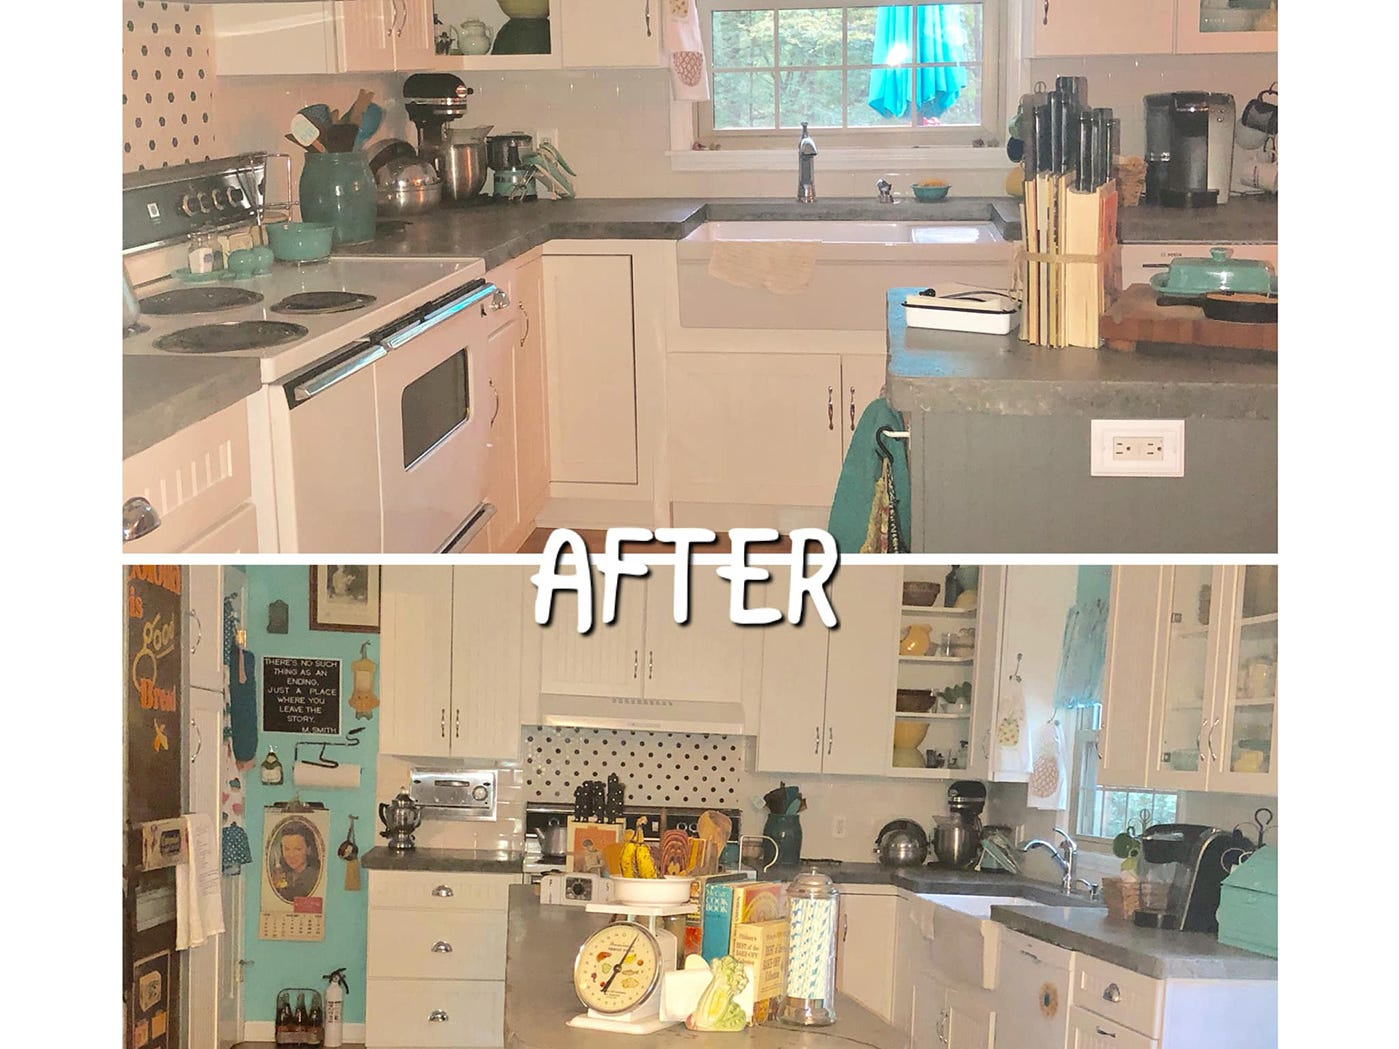 The 'after' view of Kathleen Walter's retro kitchen remodel.